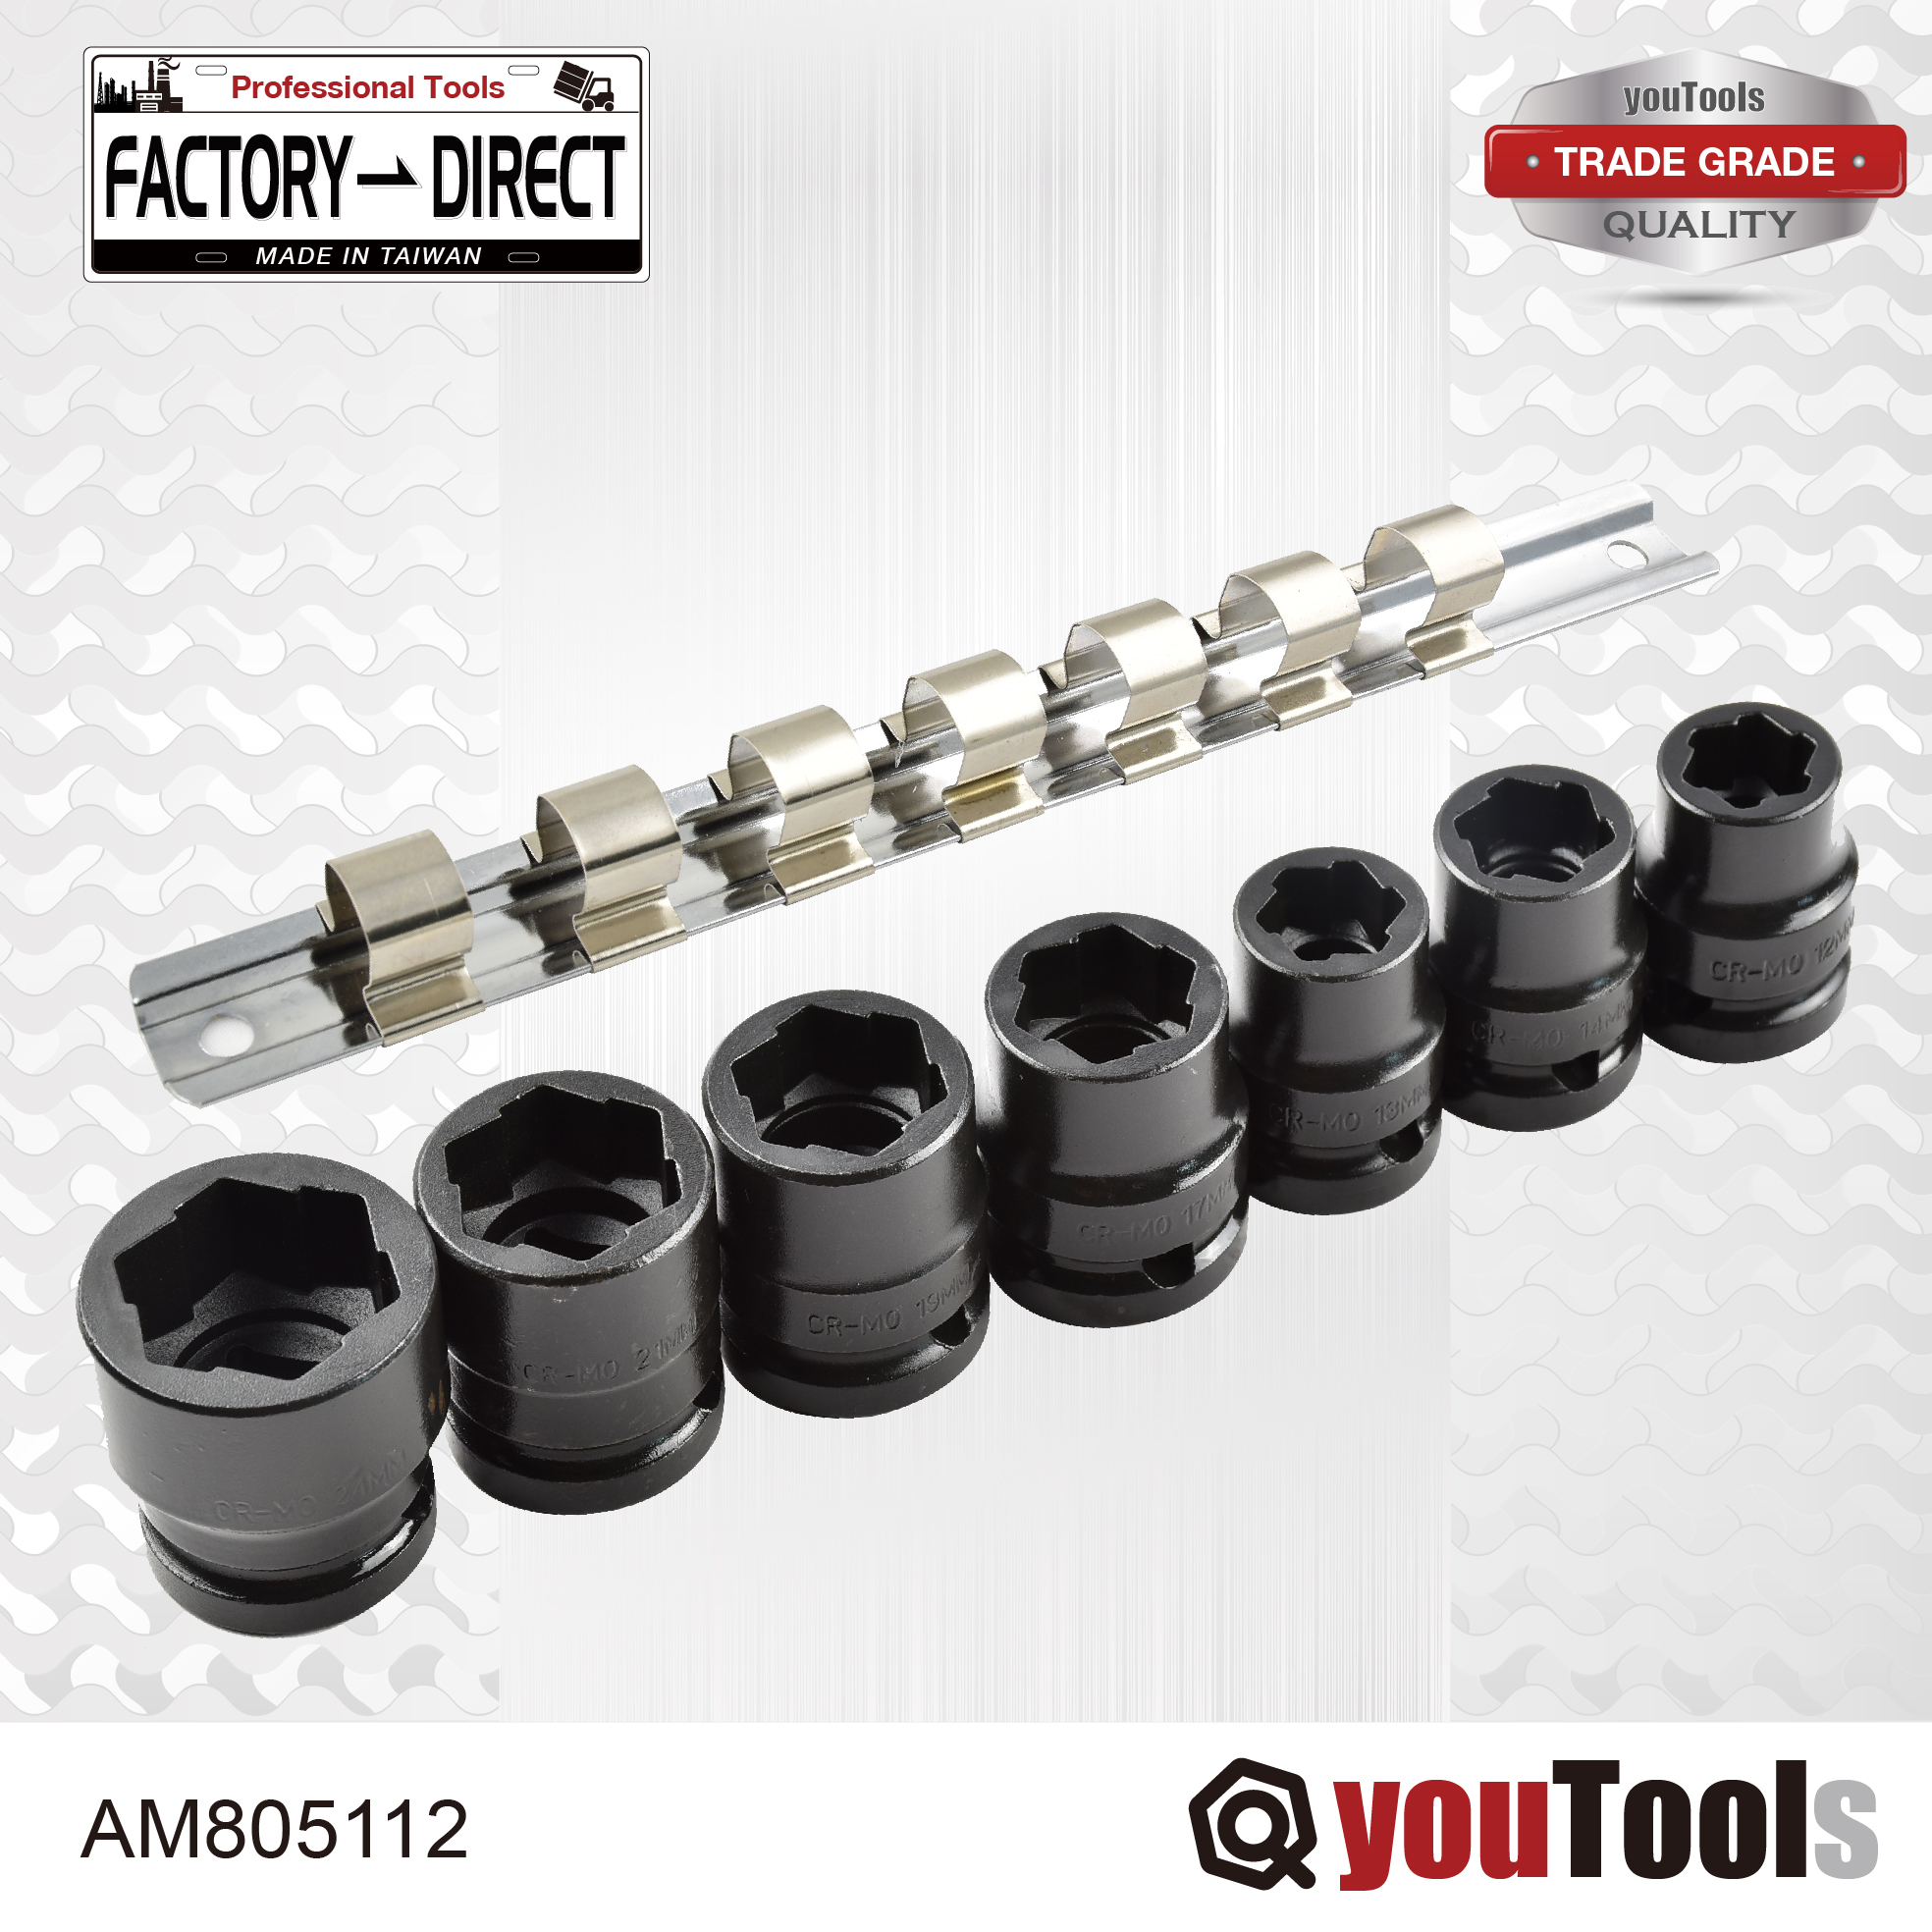 7pce 1 2 Drive Bolt Extractor Impact Sockets Youtools